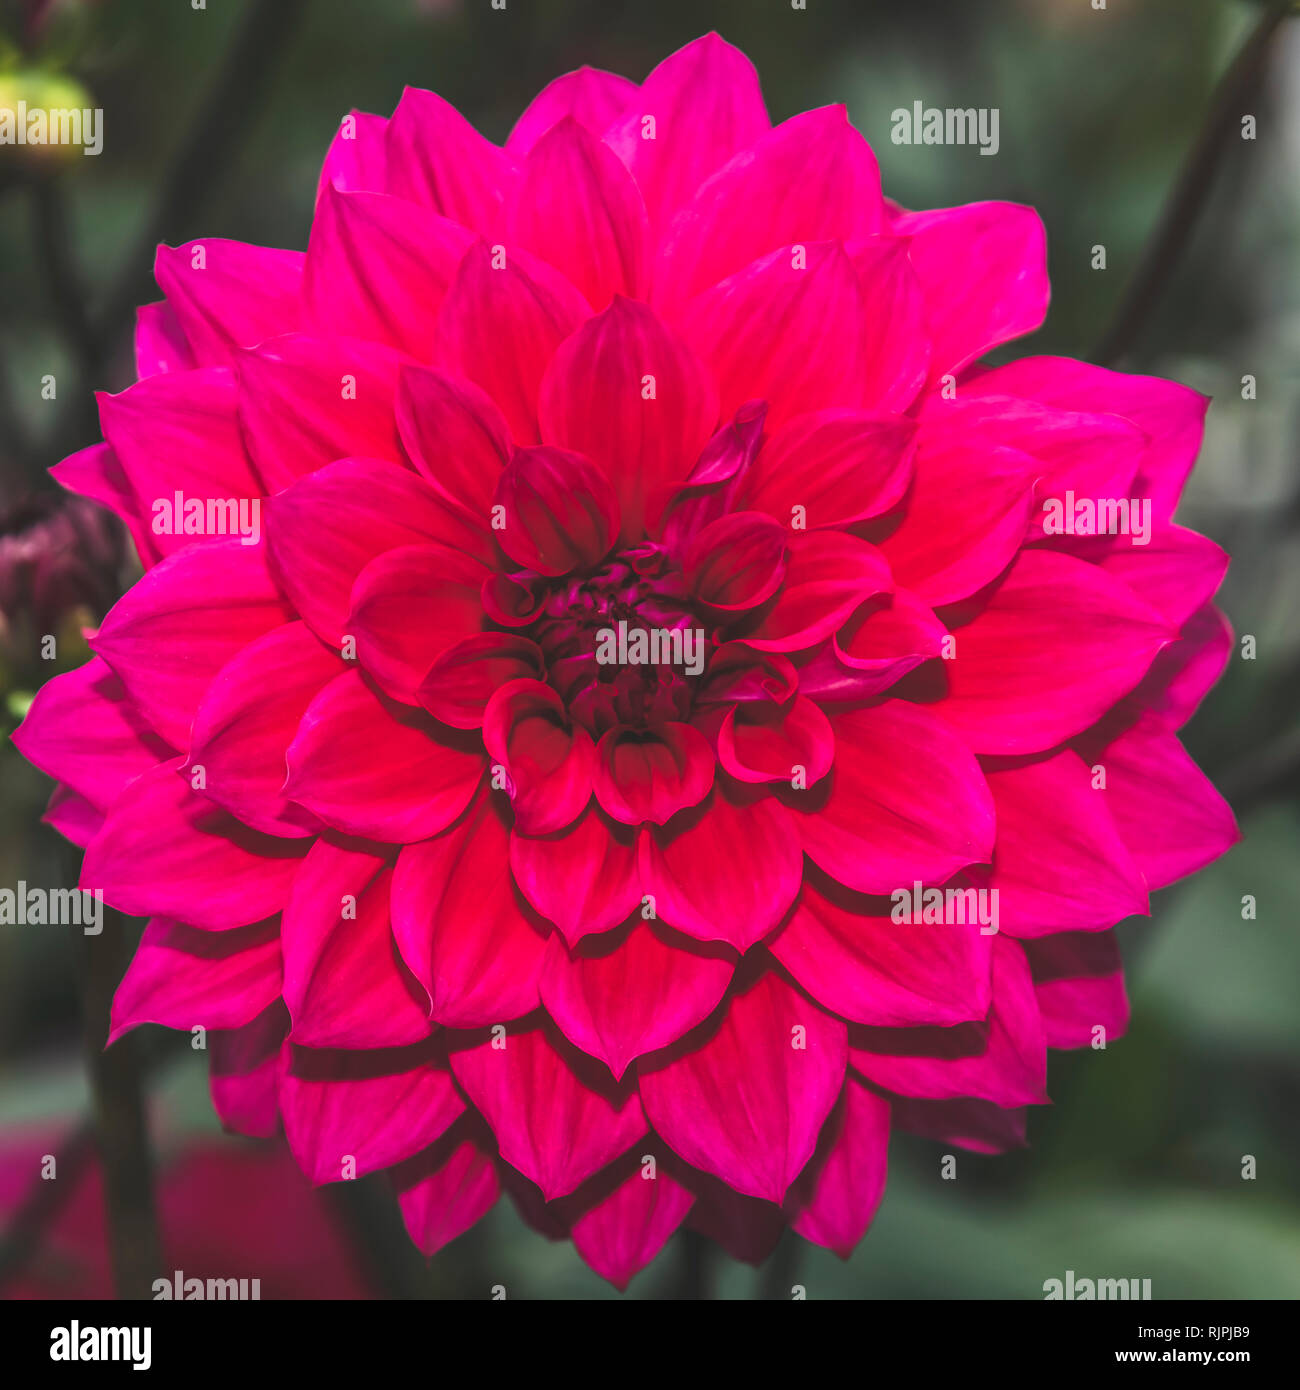 Red dahlia pinnata single flower petal in isolated close up details in muted elegant filter - Stock Image